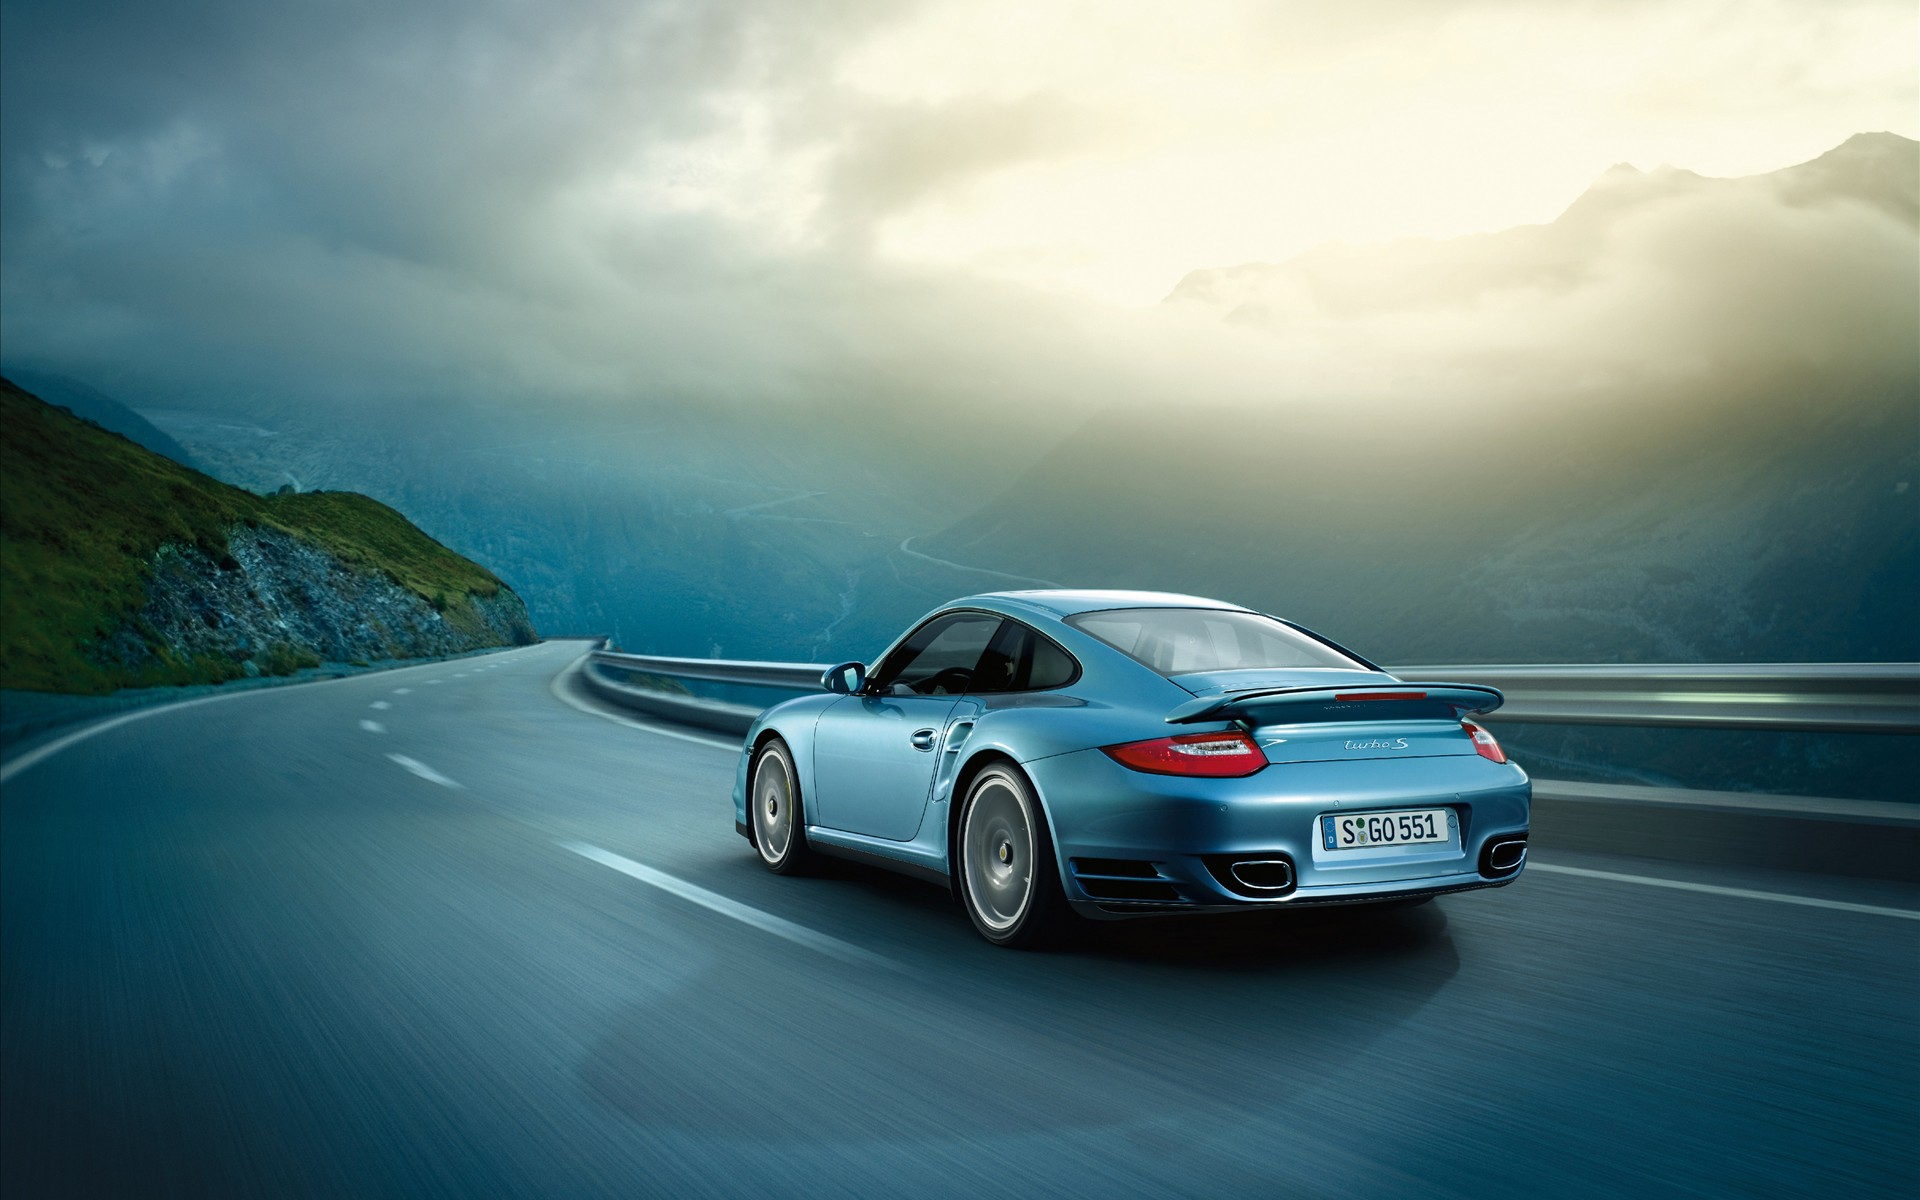 2011 porsche 911 turbo s 2 wallpapers hd wallpapers - Porsche 911 Wallpaper Widescreen